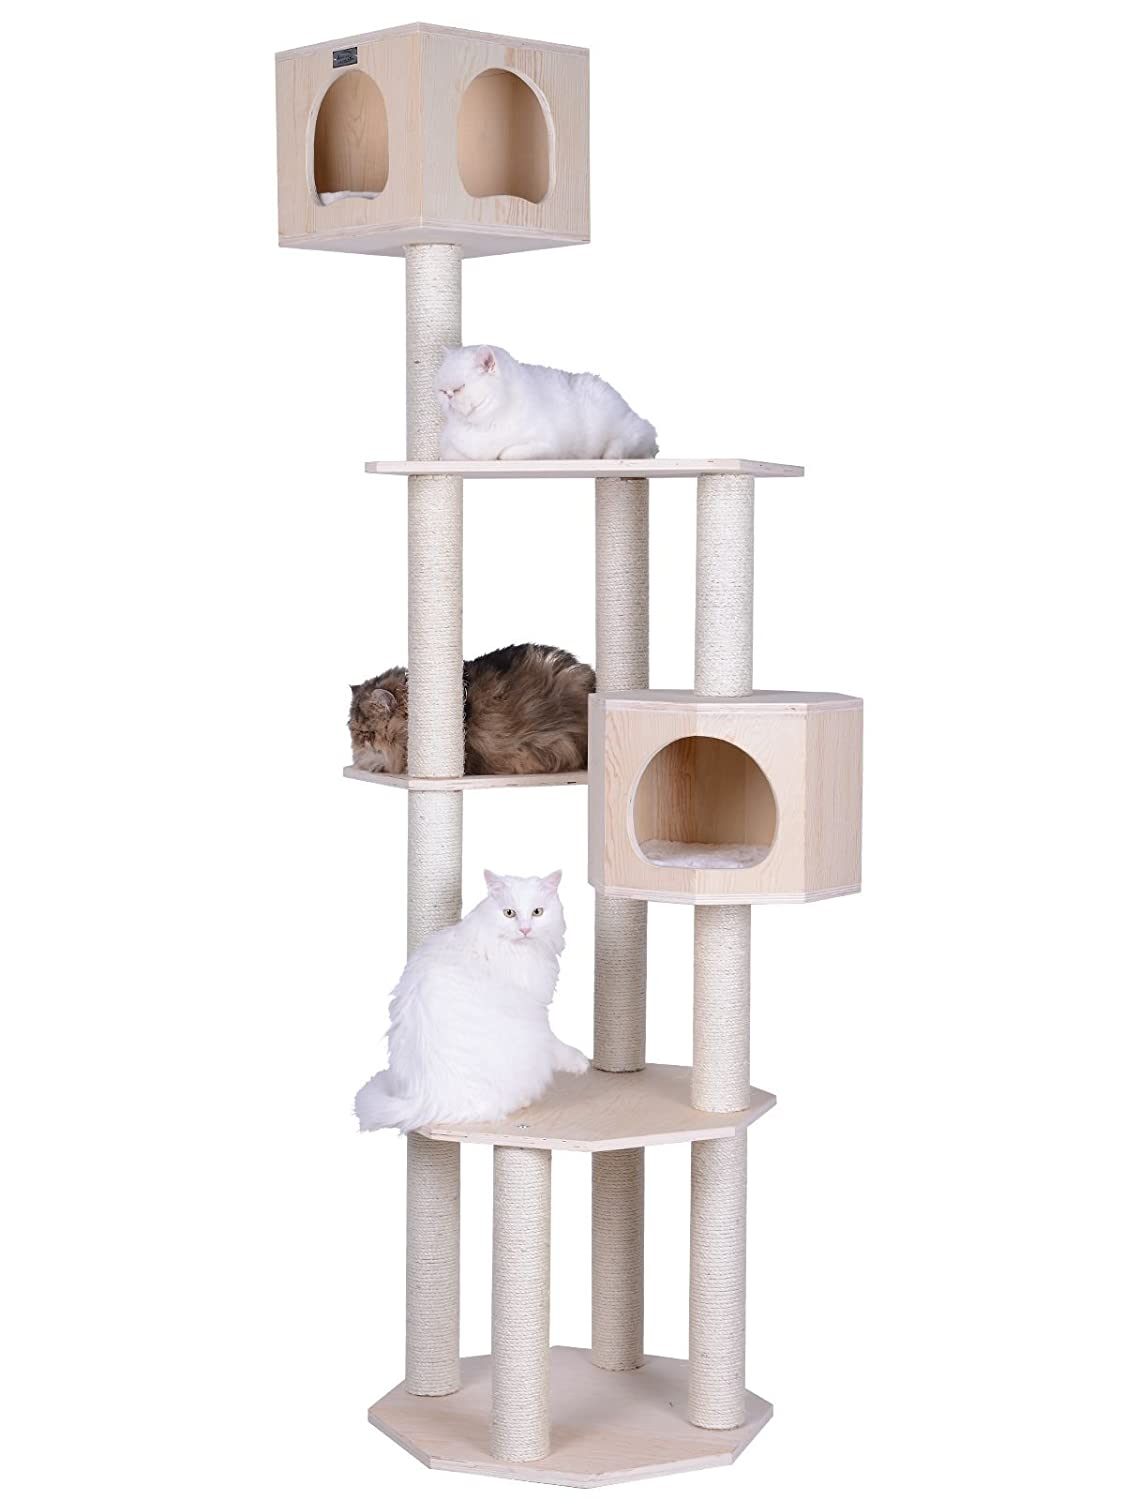 amazoncom  armarkat premium pinus sylvestris wood cat tree condo  - amazoncom  armarkat premium pinus sylvestris wood cat tree condoscratching post kitty furniture tall sturdy light wood and sisal rope  petsupplies